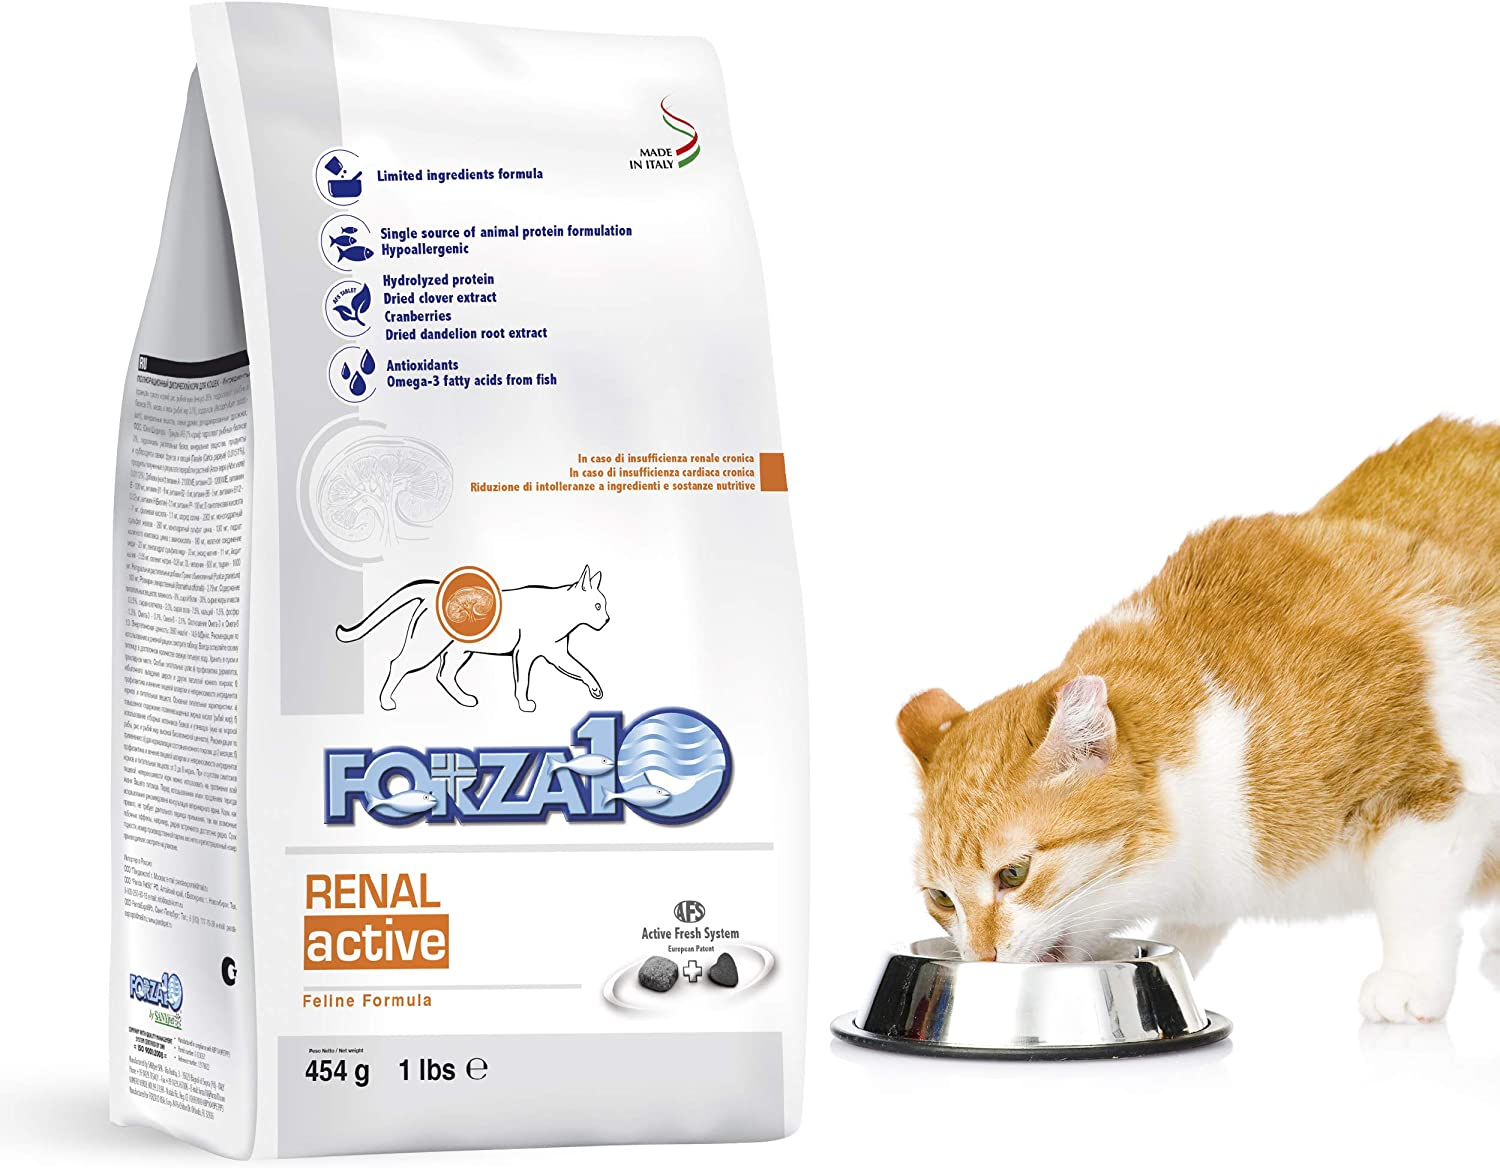 Forza10 Active Kidney Renal Diet Dry Cat Food for Adult Cats, Cat Food Dry for Heart and Kidney Problems, Wild Caught Anchovy Flavor, 1 Pound Bag